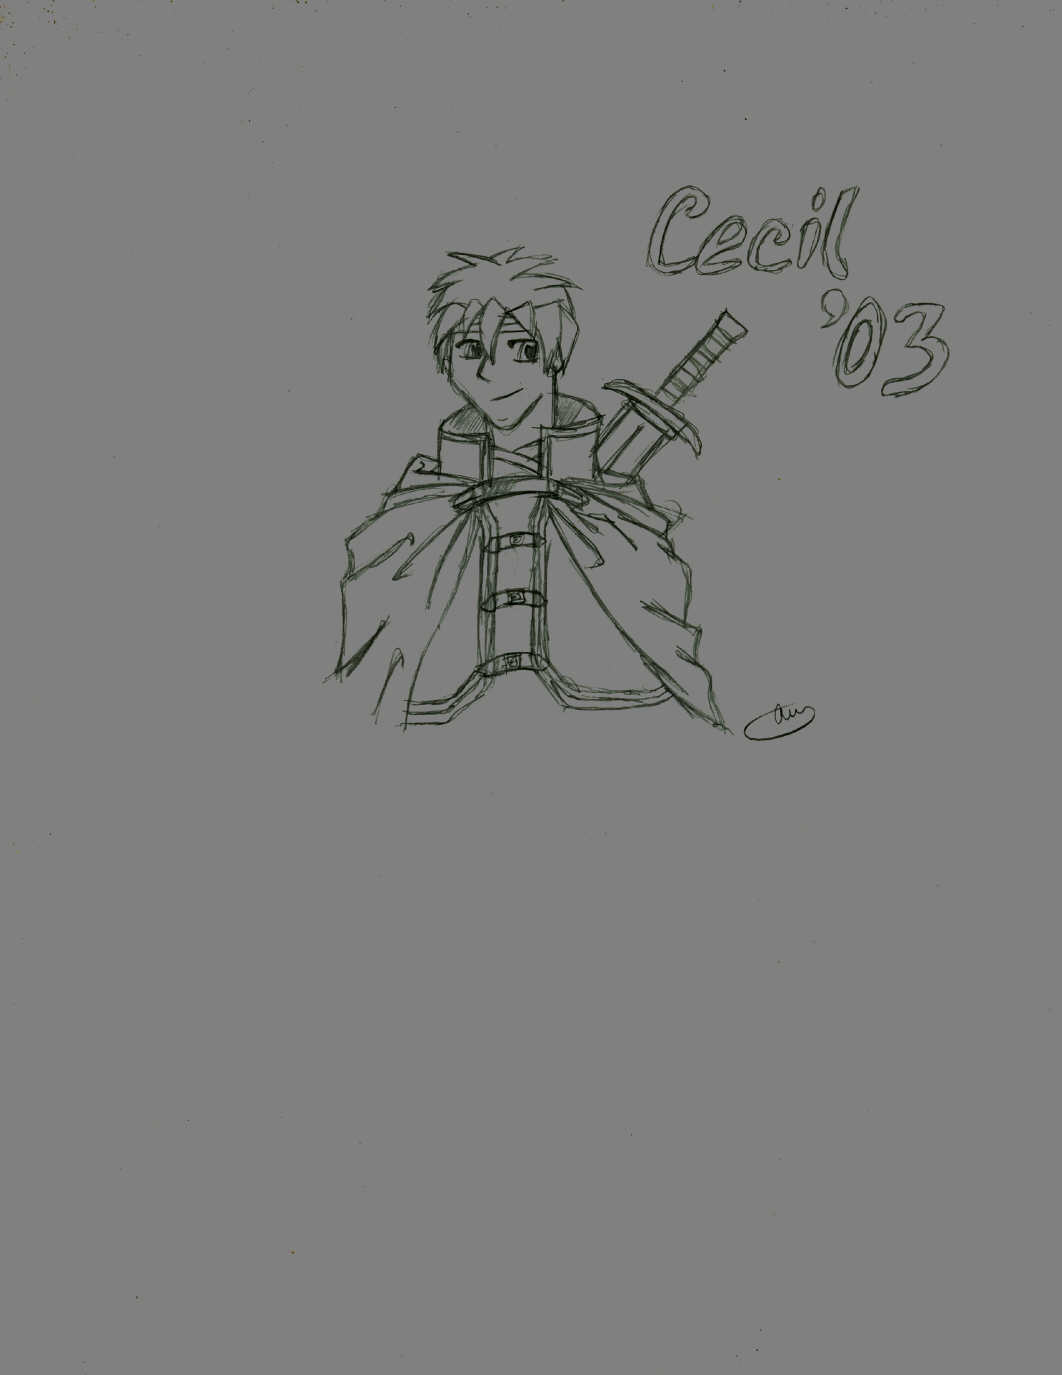 Cecil the Paladin by Elc_the_Pyro